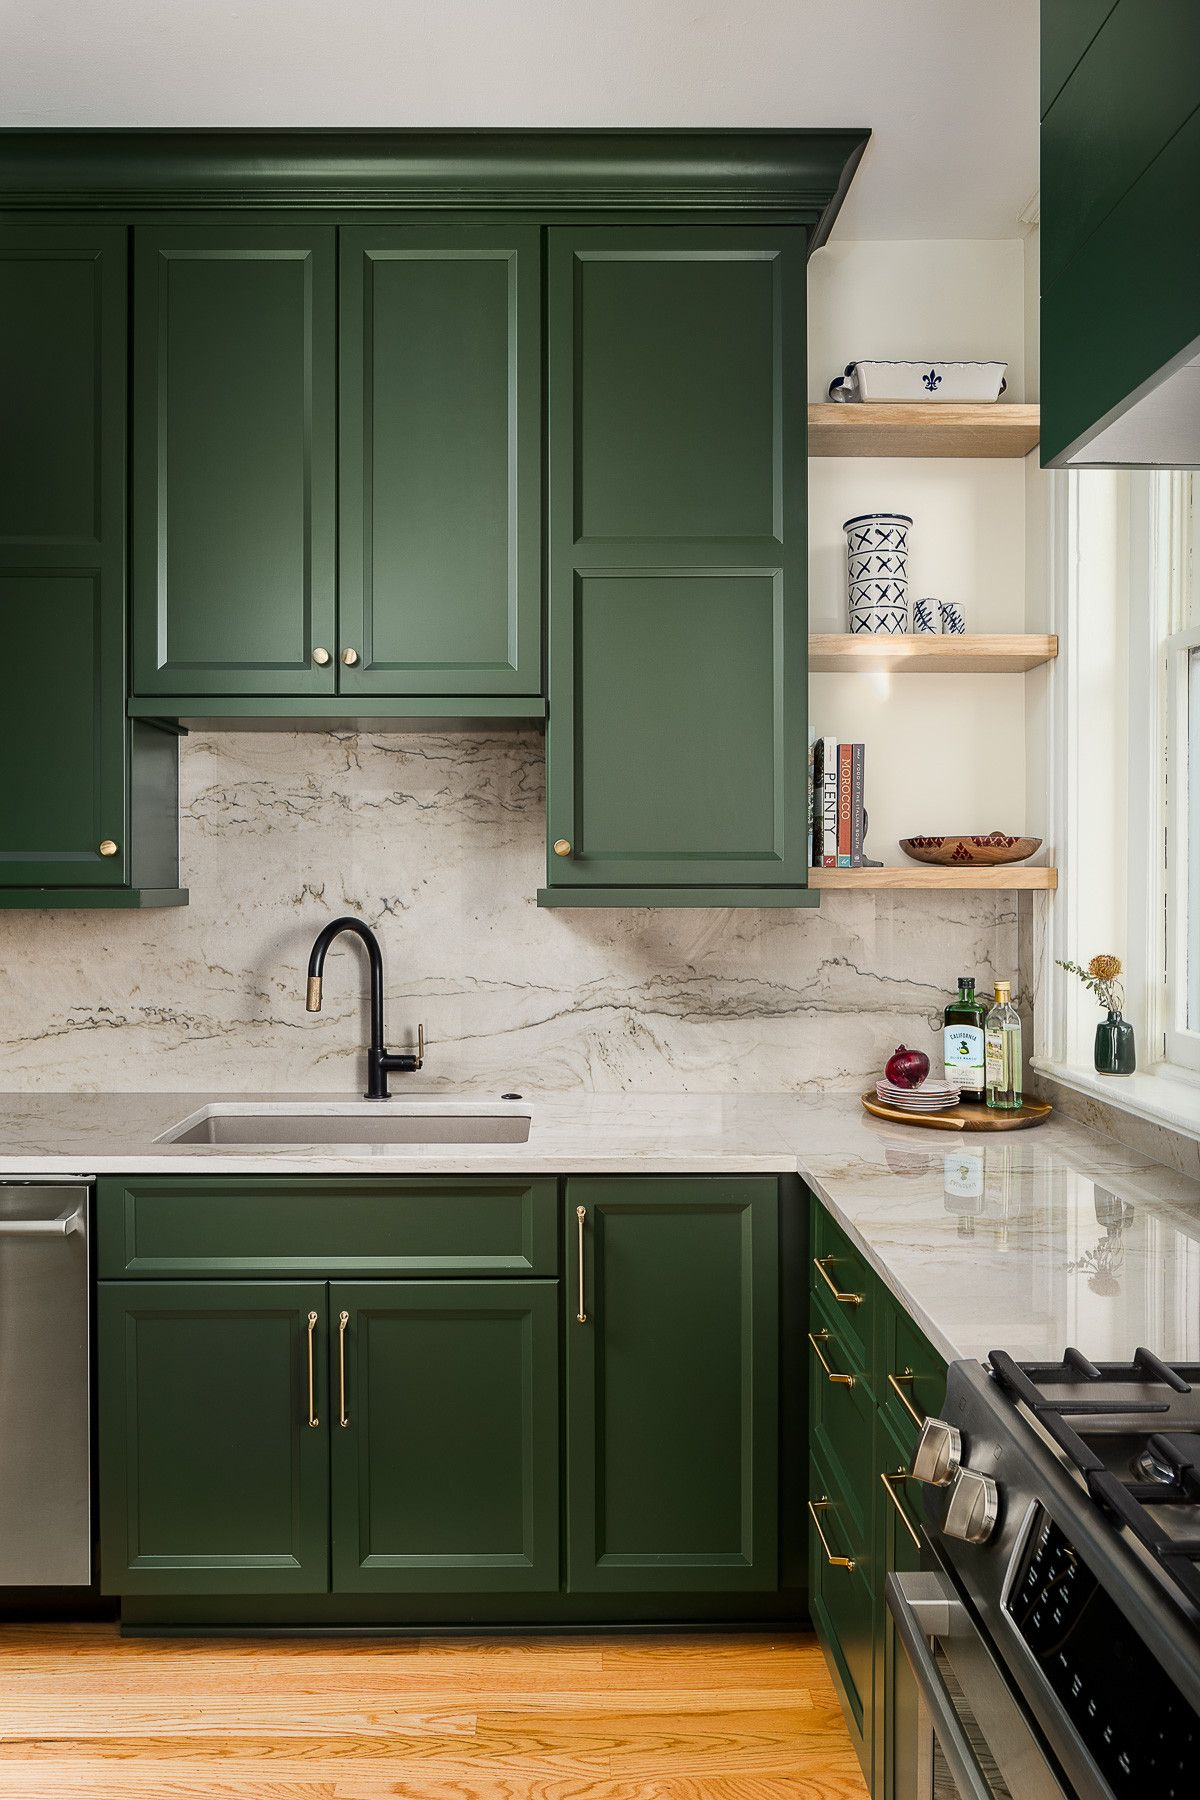 White and green is set to be a trendy kitchen color scheme in 2021